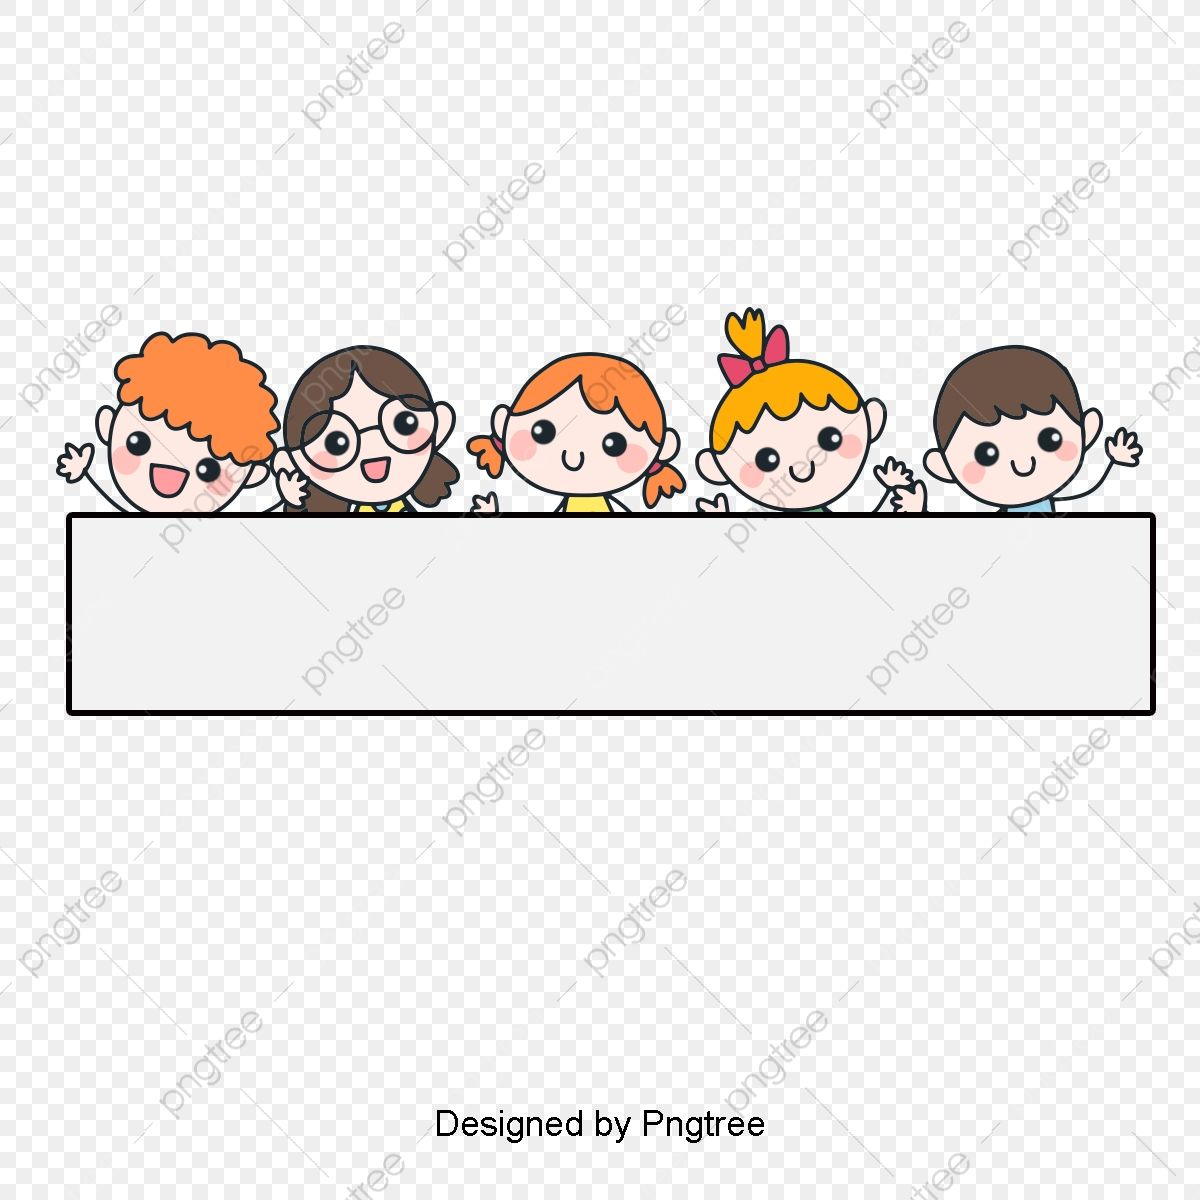 Border Cartoon Children Children Clipart Cartoon Child Png Transparent Clipart Image And Psd File For Free Download Doodle Borders Cartoon Character Design Powerpoint Background Design